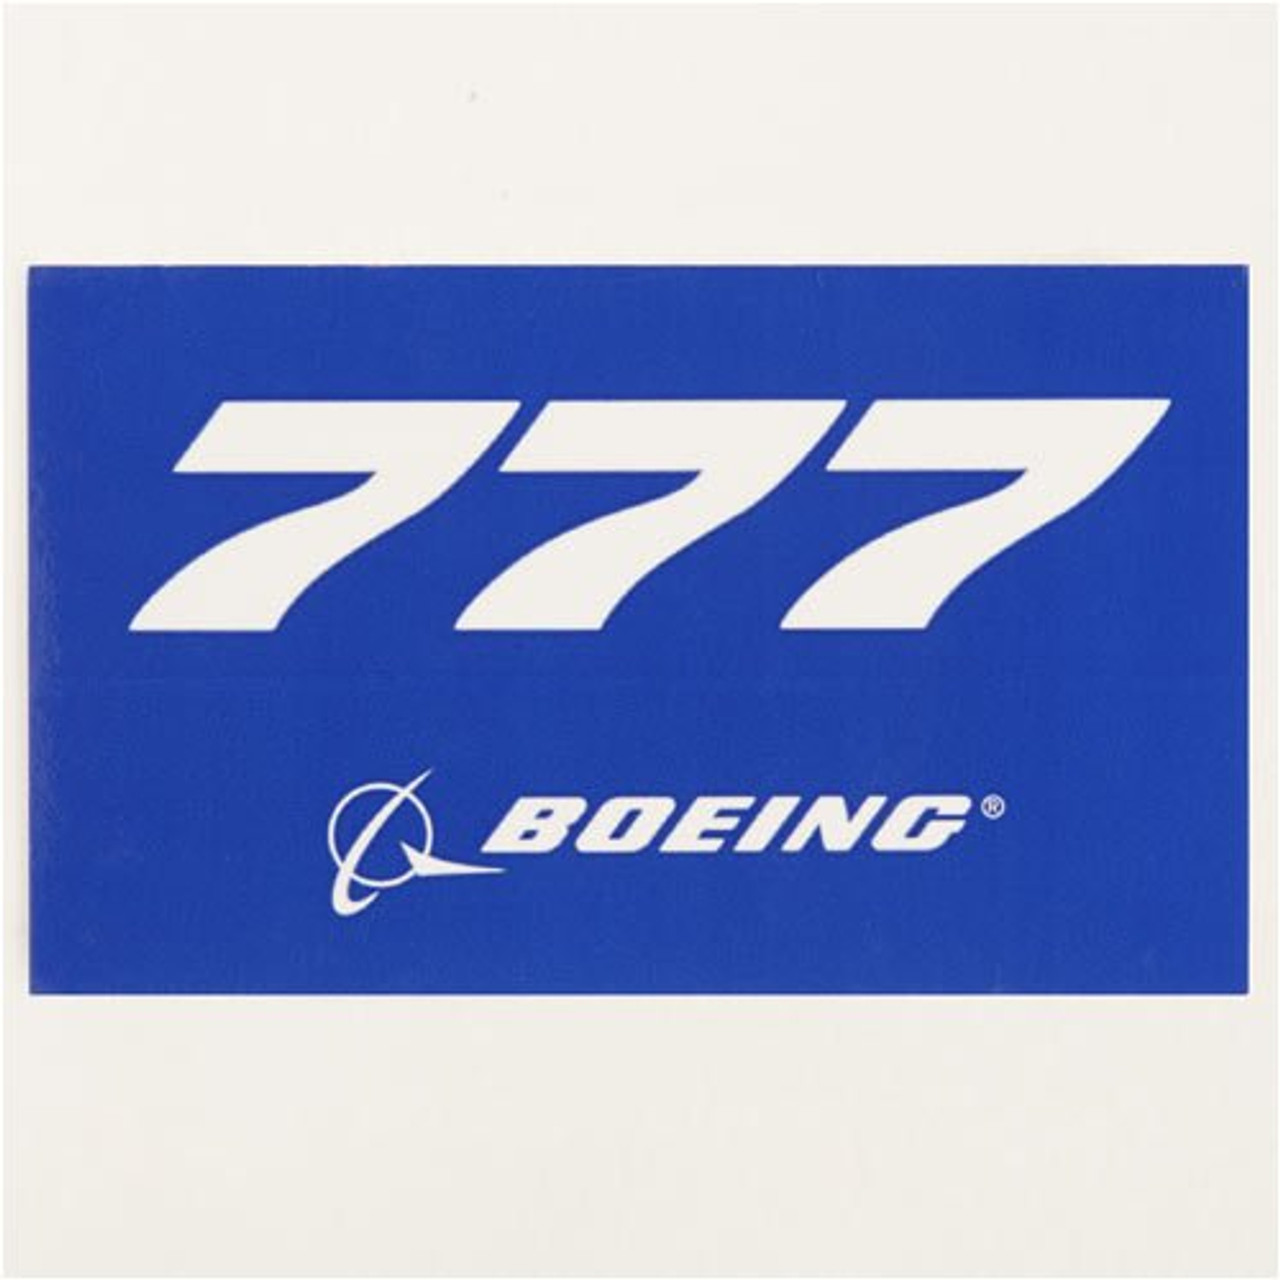 777 Blue Sticker